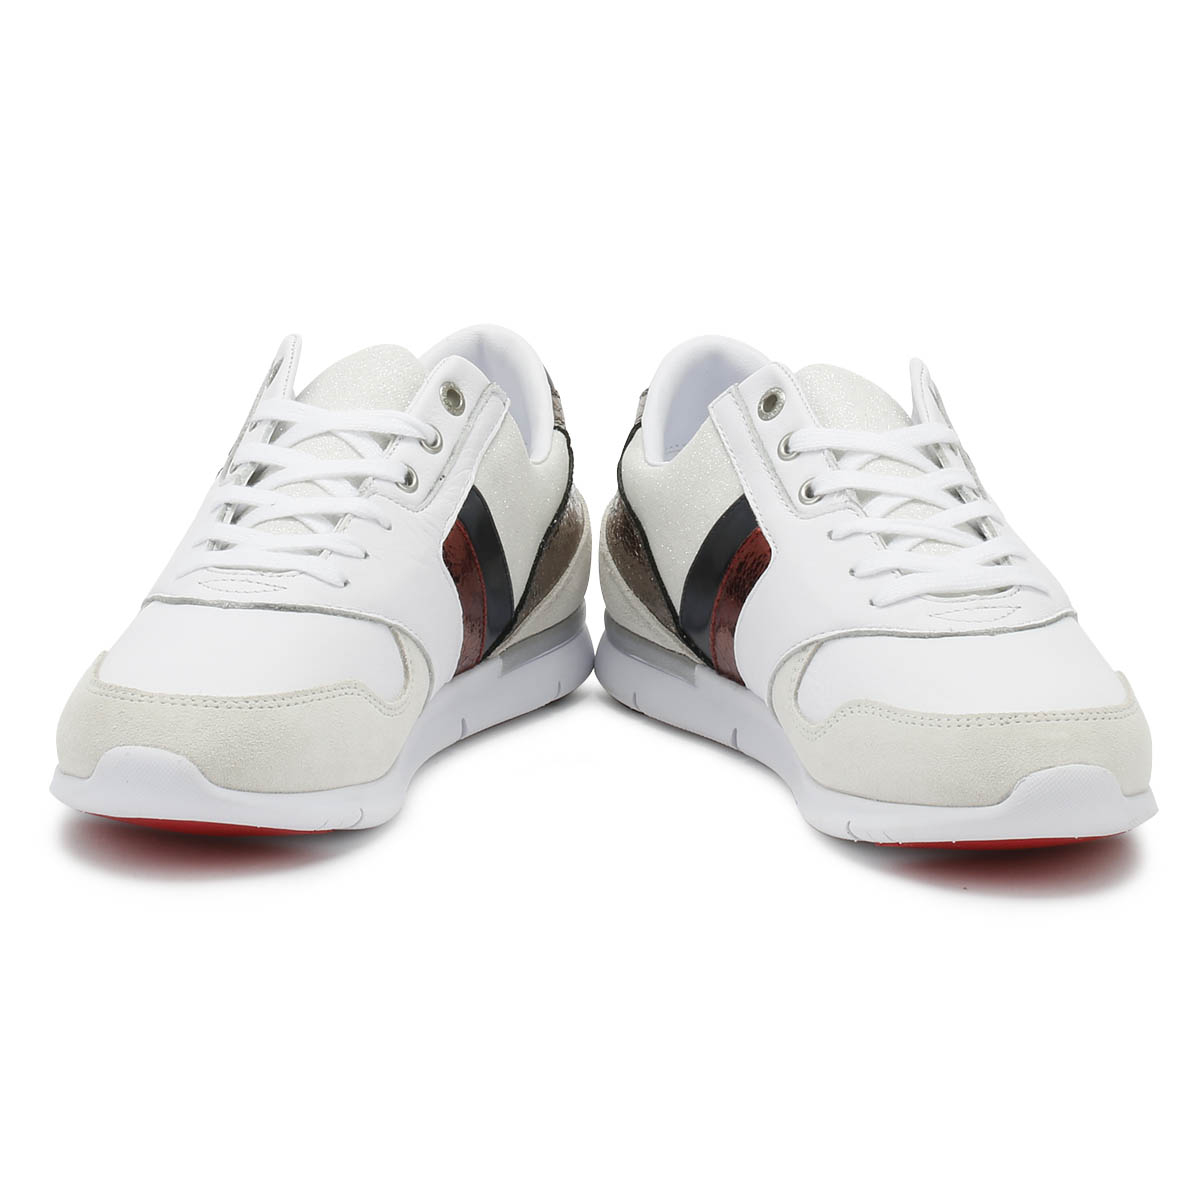 Tommy Hilfiger Damenschuhe Trainers Up Weiß Leder Light Lace Up Trainers Sport Casual Schuhes 308e2c